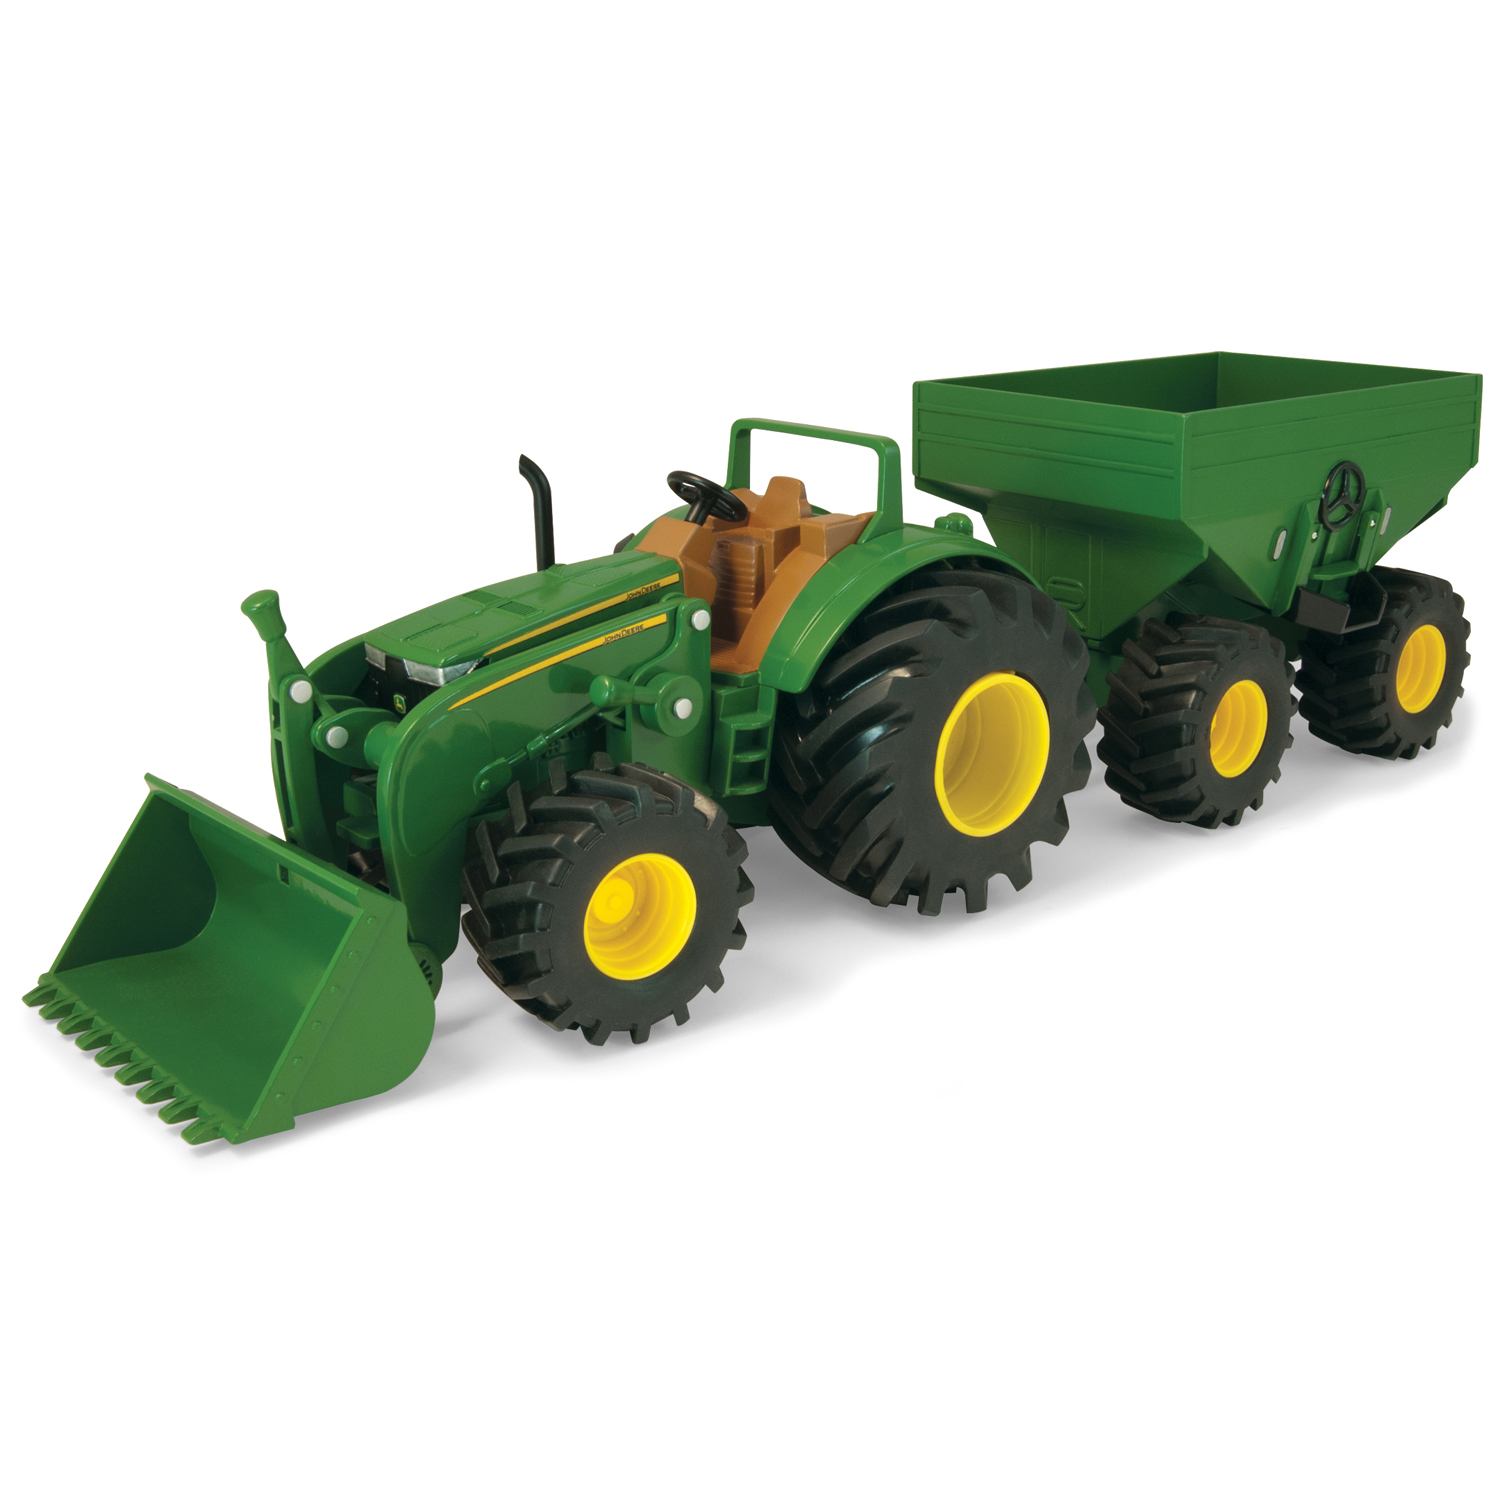 John deere toys tractor with gravity wagon amp loader at toystop